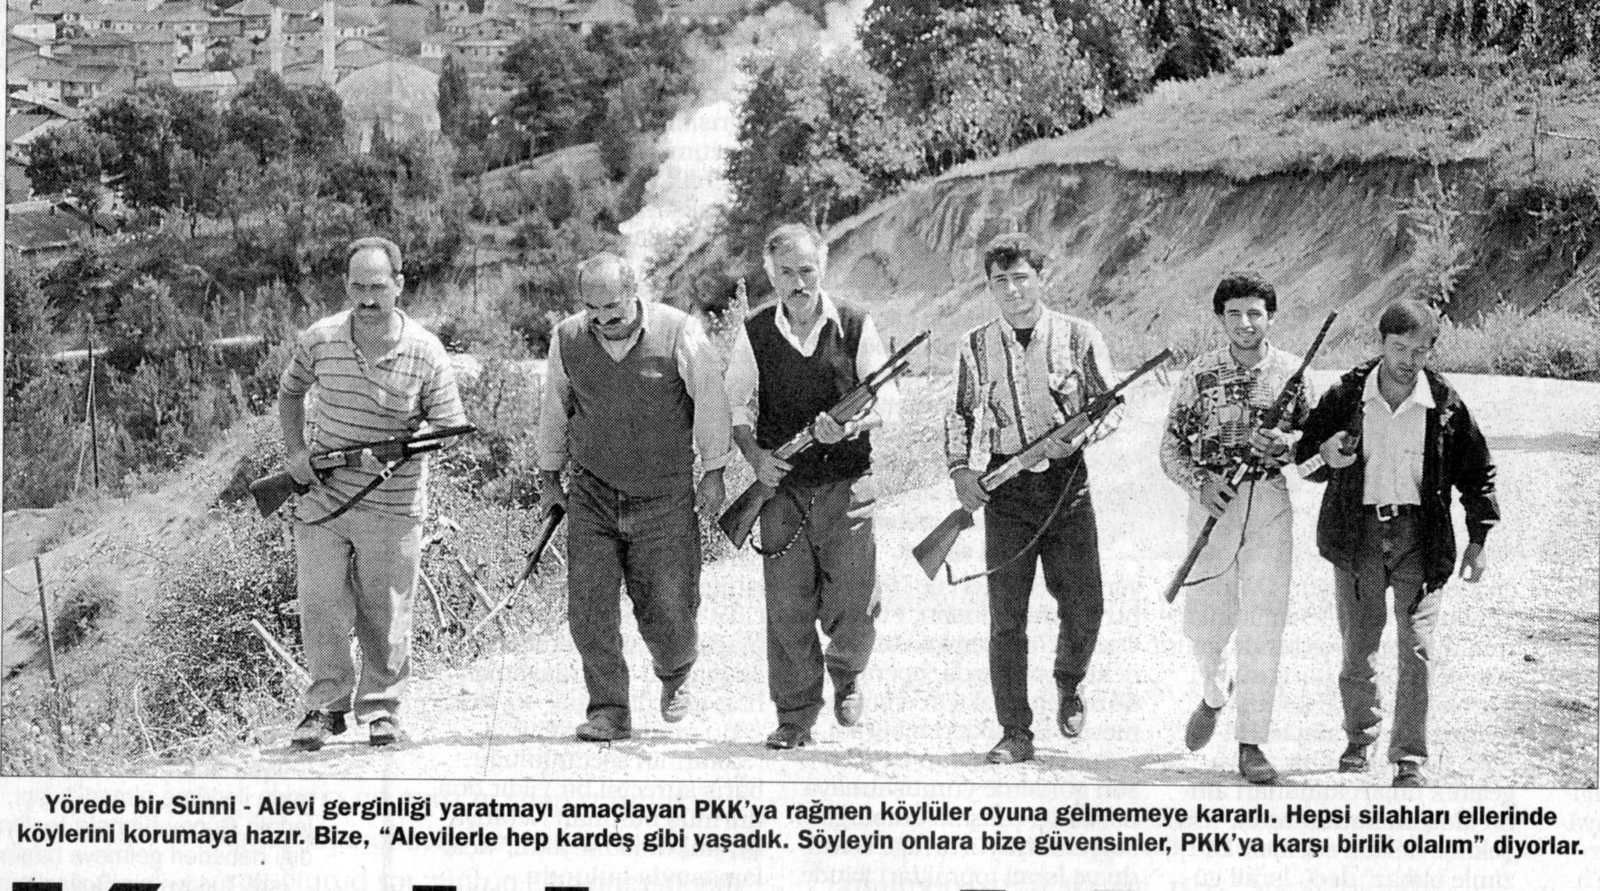 Photo publiée par Milliyet, 5 septembre 1997